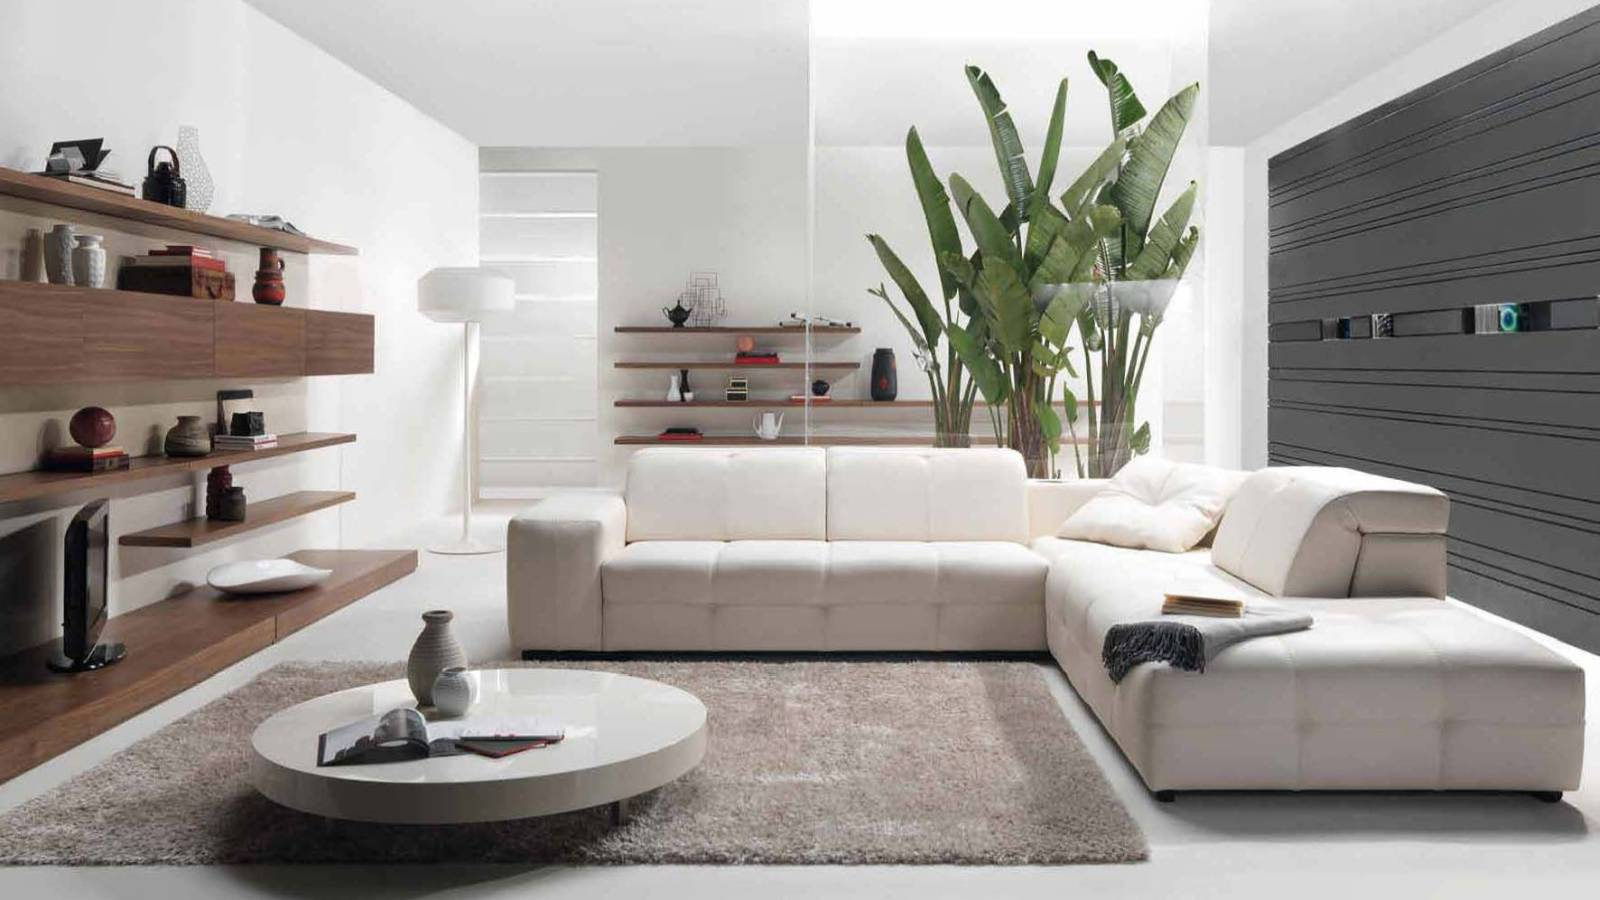 Interiors Design Furniture Mishawaka ~ How to design a modern living room interior